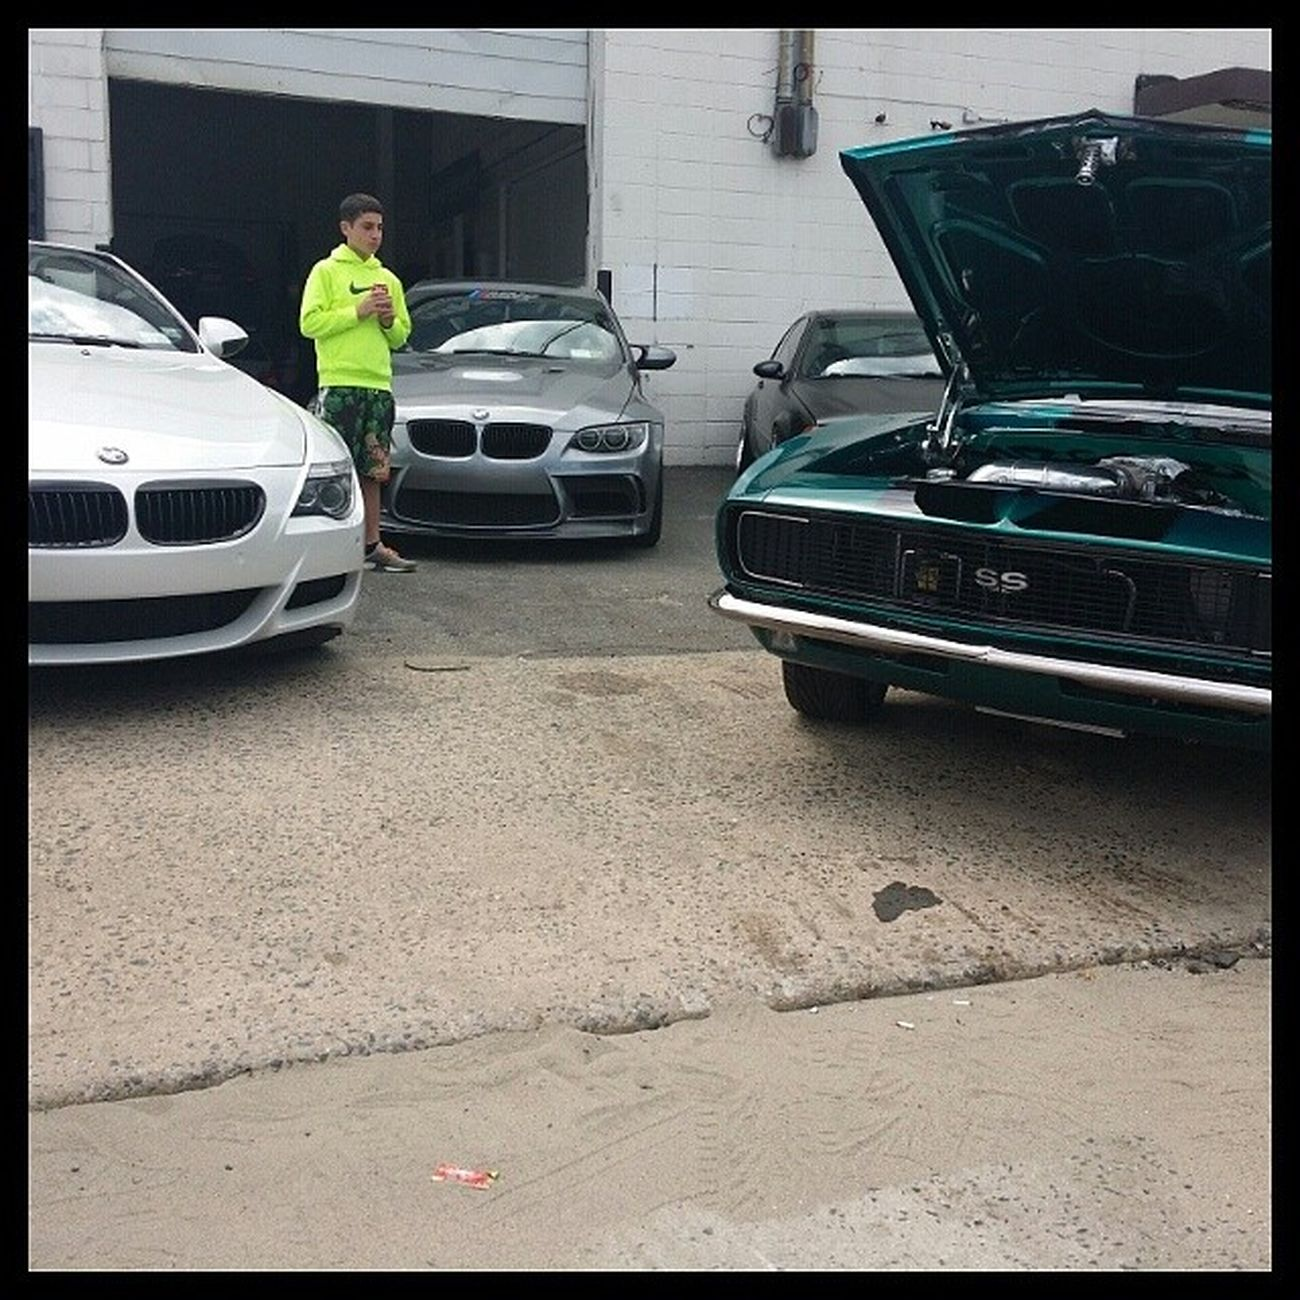 Pawer everywhere Nycalive Mncperformance Lawsonblvd Lawsonblvdproject bmwmnation musclecar mpower bmwgram goodtimes goodpeople goodfood goodweather e90tristate e90post